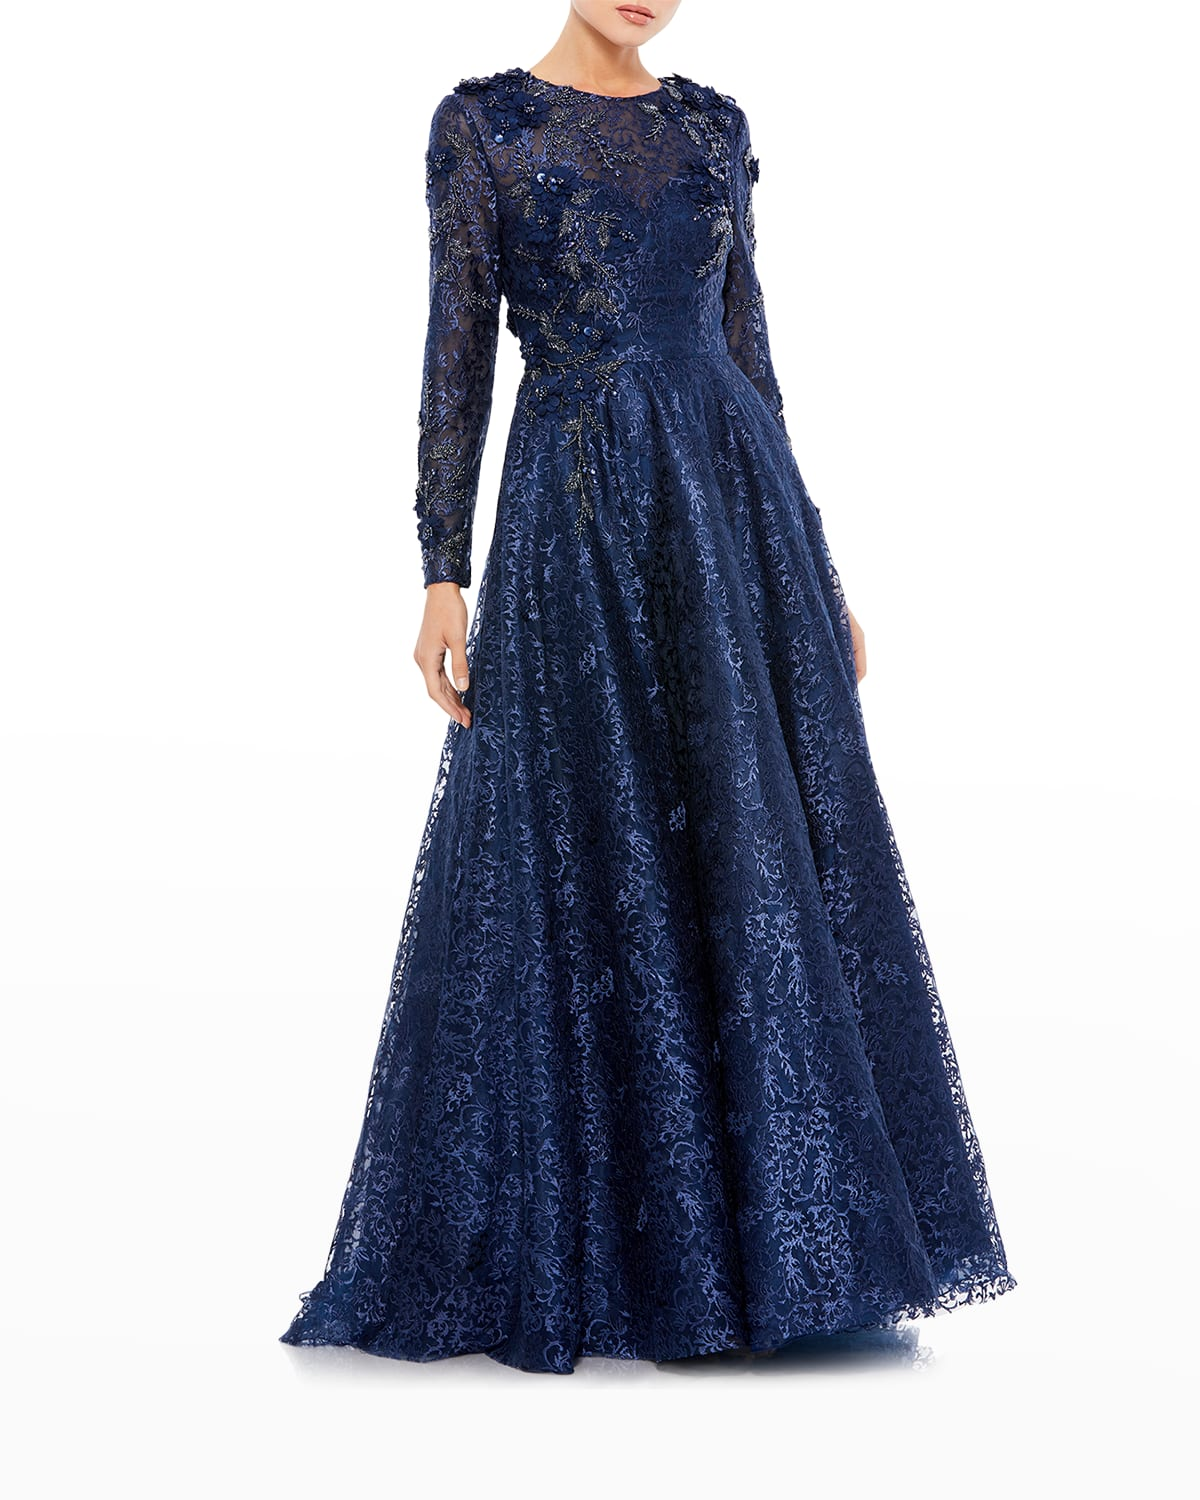 Embellished Long-Sleeve Floral Lace A-Line Gown